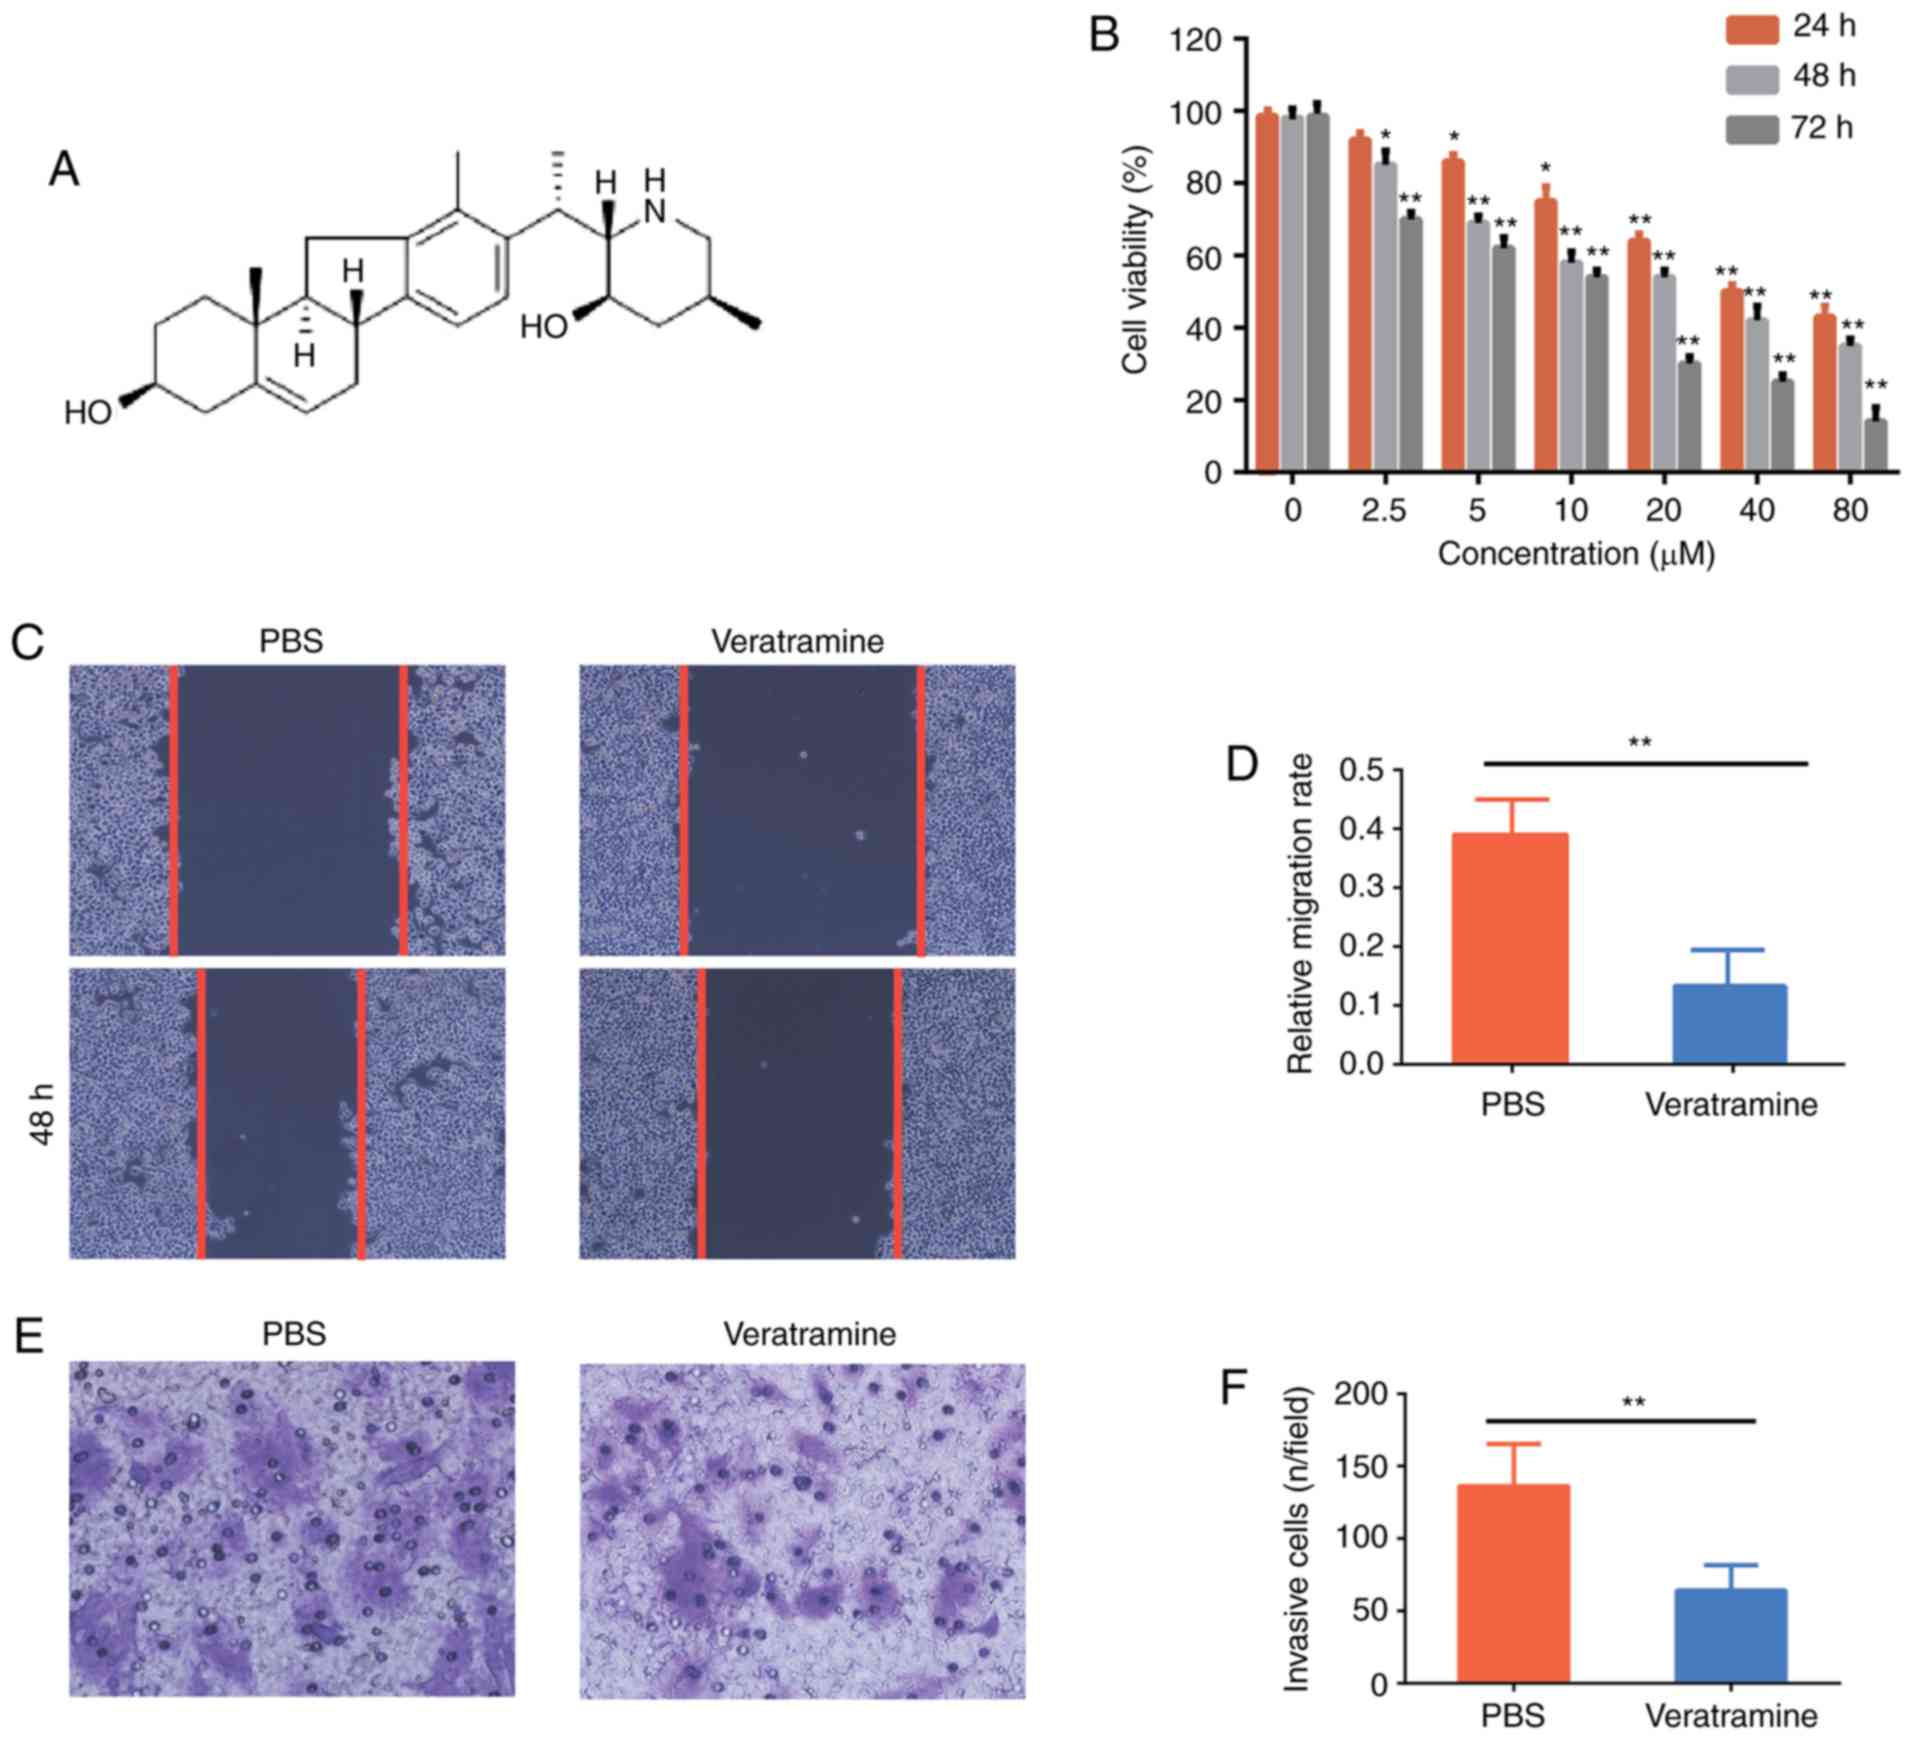 COMP promotes the proliferation of HCC cells in vitro and